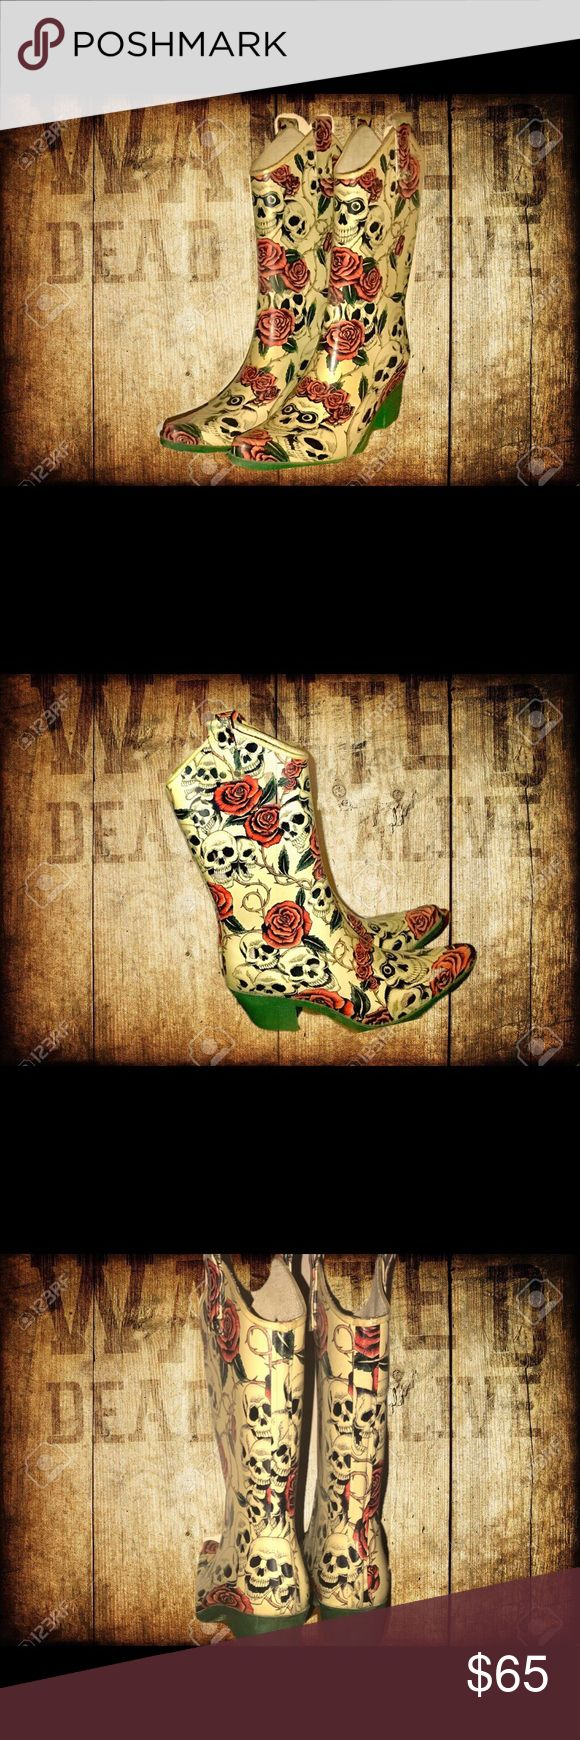 "🌹NOMAD-Yippee Dippy- Super Stylish Rain Boots☠️ ☠️ NOMAD-Yippee Dippy- Super Stylish Rain Boots 🌹Durable and Comfortable Rain Boots by Nomad COWBOY STYLE RAIN BOOTS with SKULLS & ROSES...green, red, black, beige background. PRE-OWNED EXCELLENT CONDITION  Color Print Rubber Heeled Mid Calf Cowboy Rainboot. Sole 10""  /  Heel 2""  /  Boot Height 13"" Nomad Footwear Shoes Winter & Rain Boots"